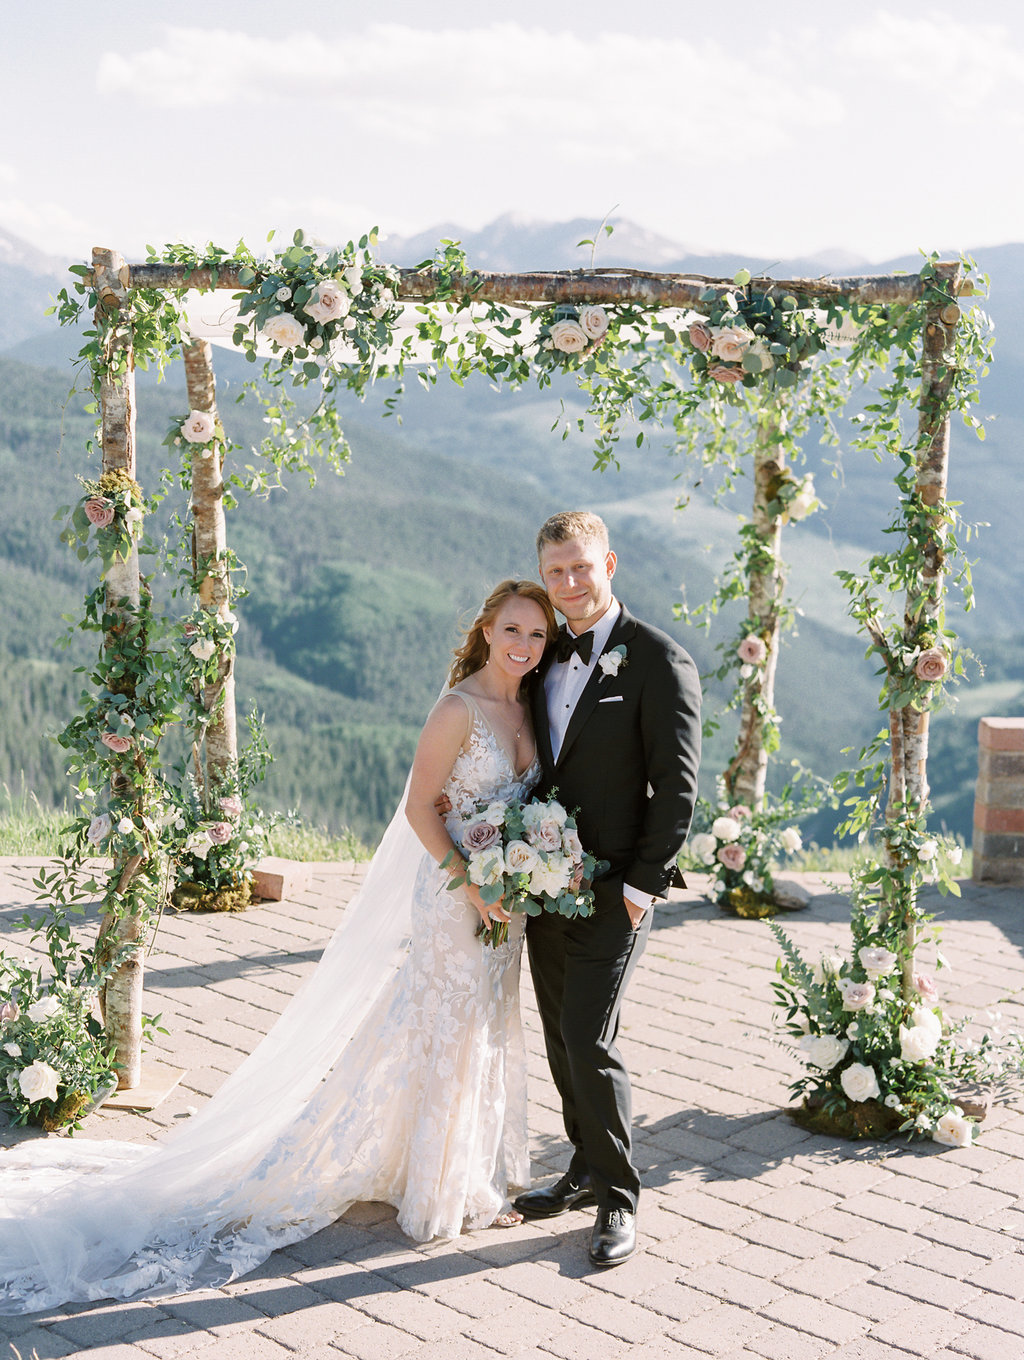 Mackenzie_Mike_Vail_Wedding_0378